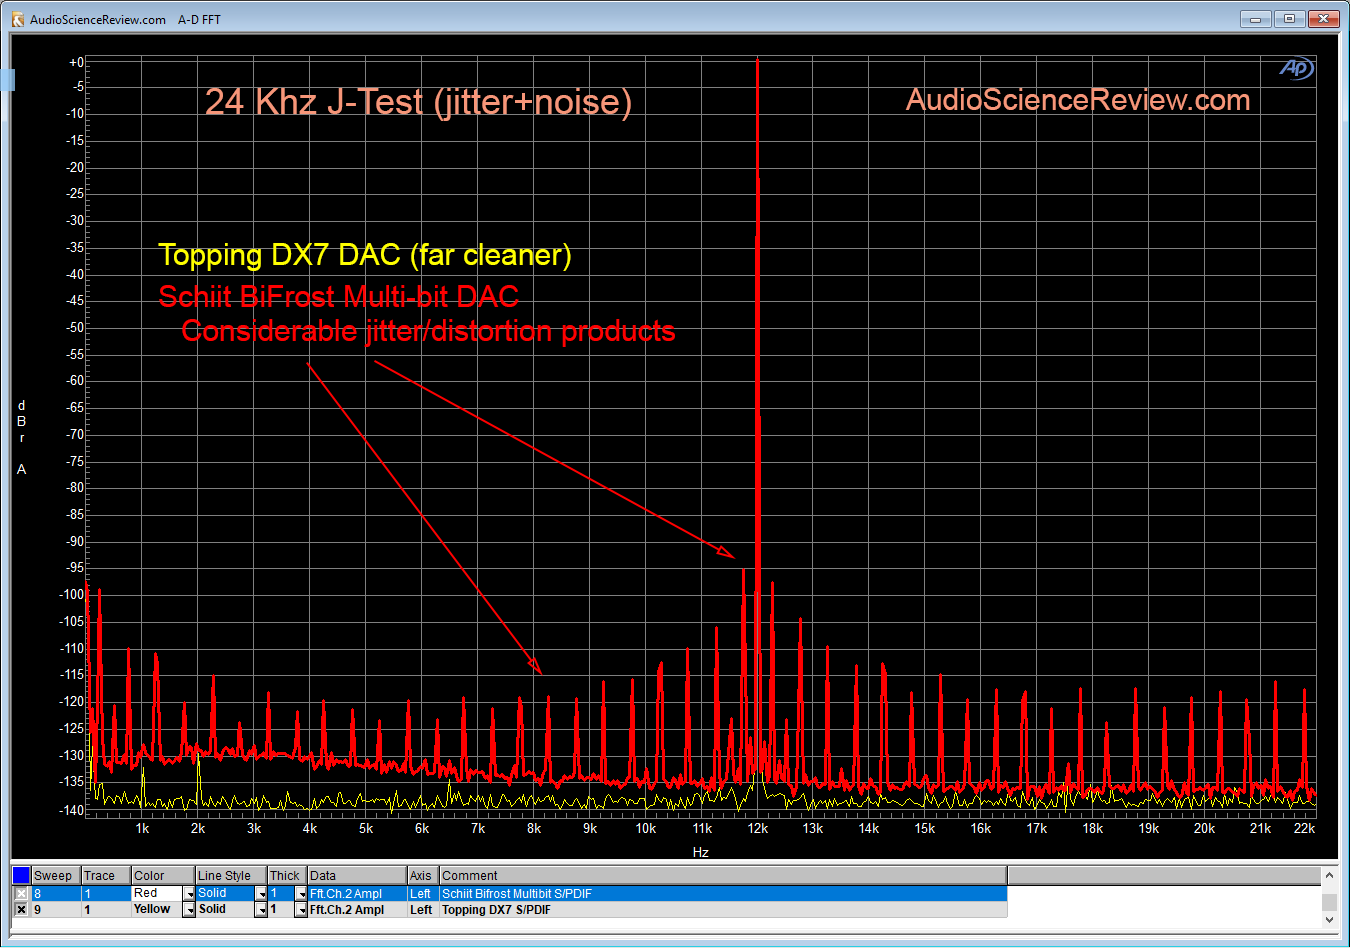 Schiit BiFrost Multibit DAC J-test Jitter Measurement.png